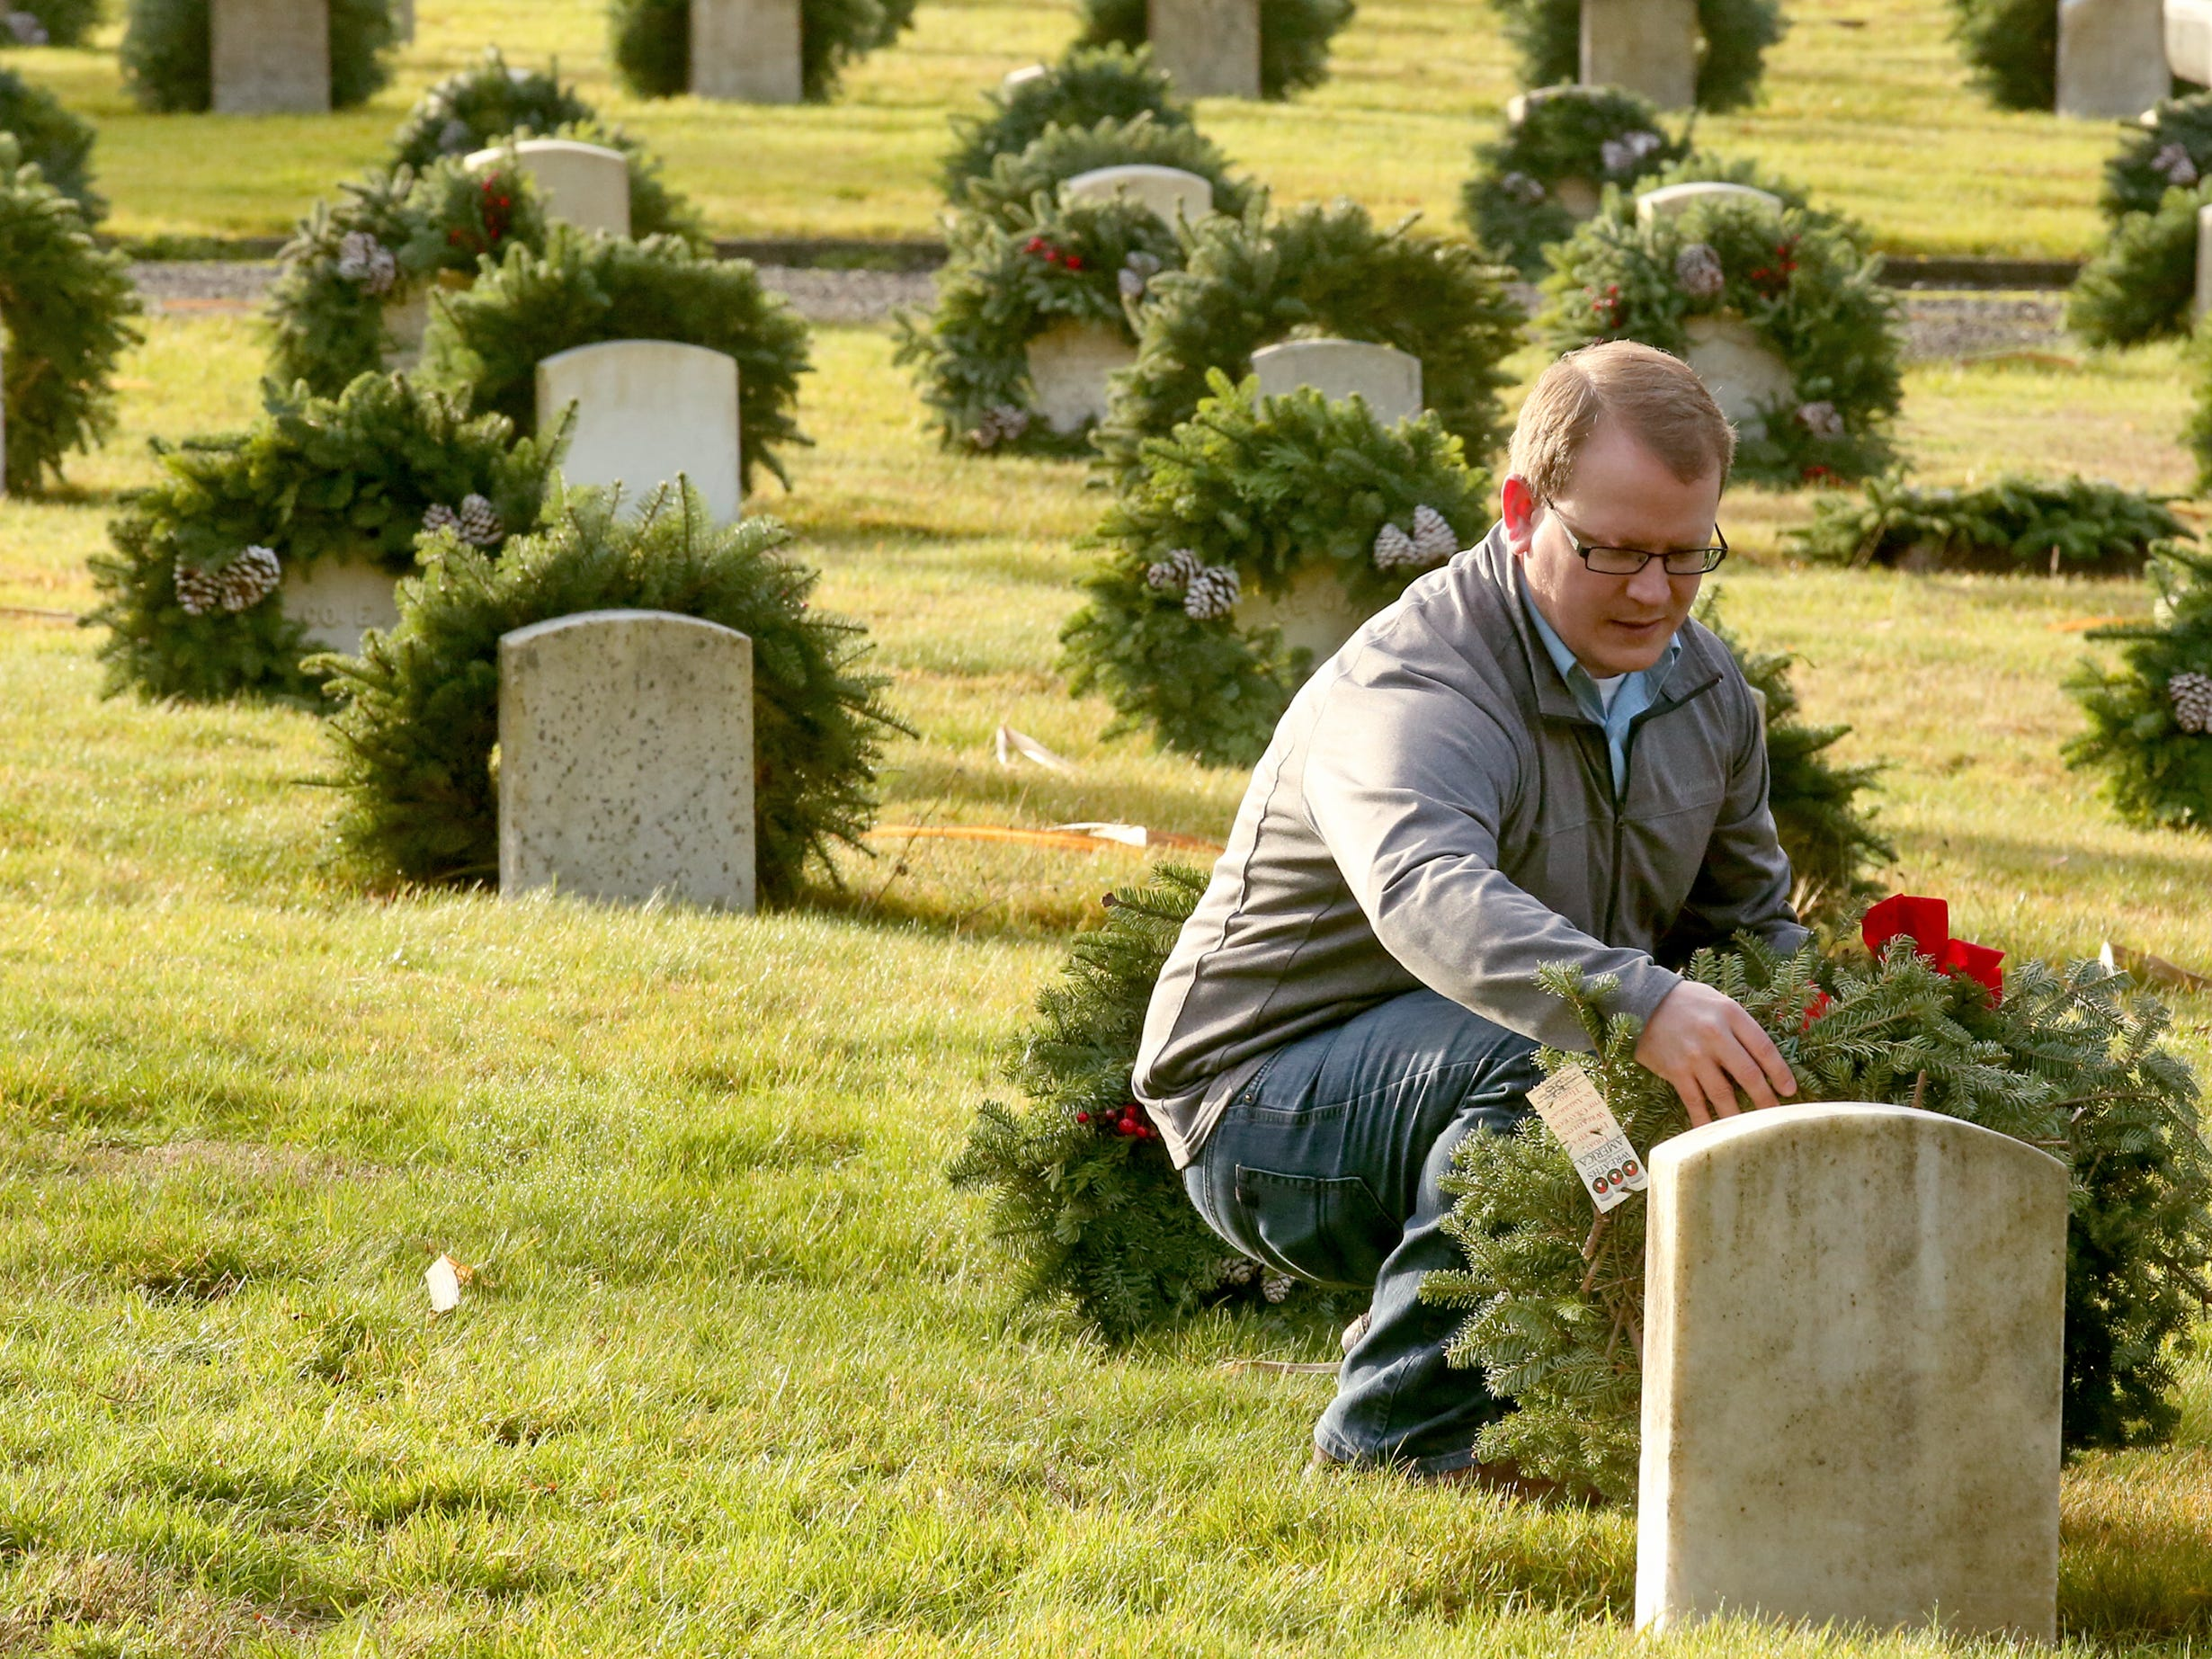 Brenden Rossiter places a wreath against a headstone during the Wreaths Across America event at the Washington Veterans Home Cemetery in Port Orchard on Saturday, December 15, 2018.